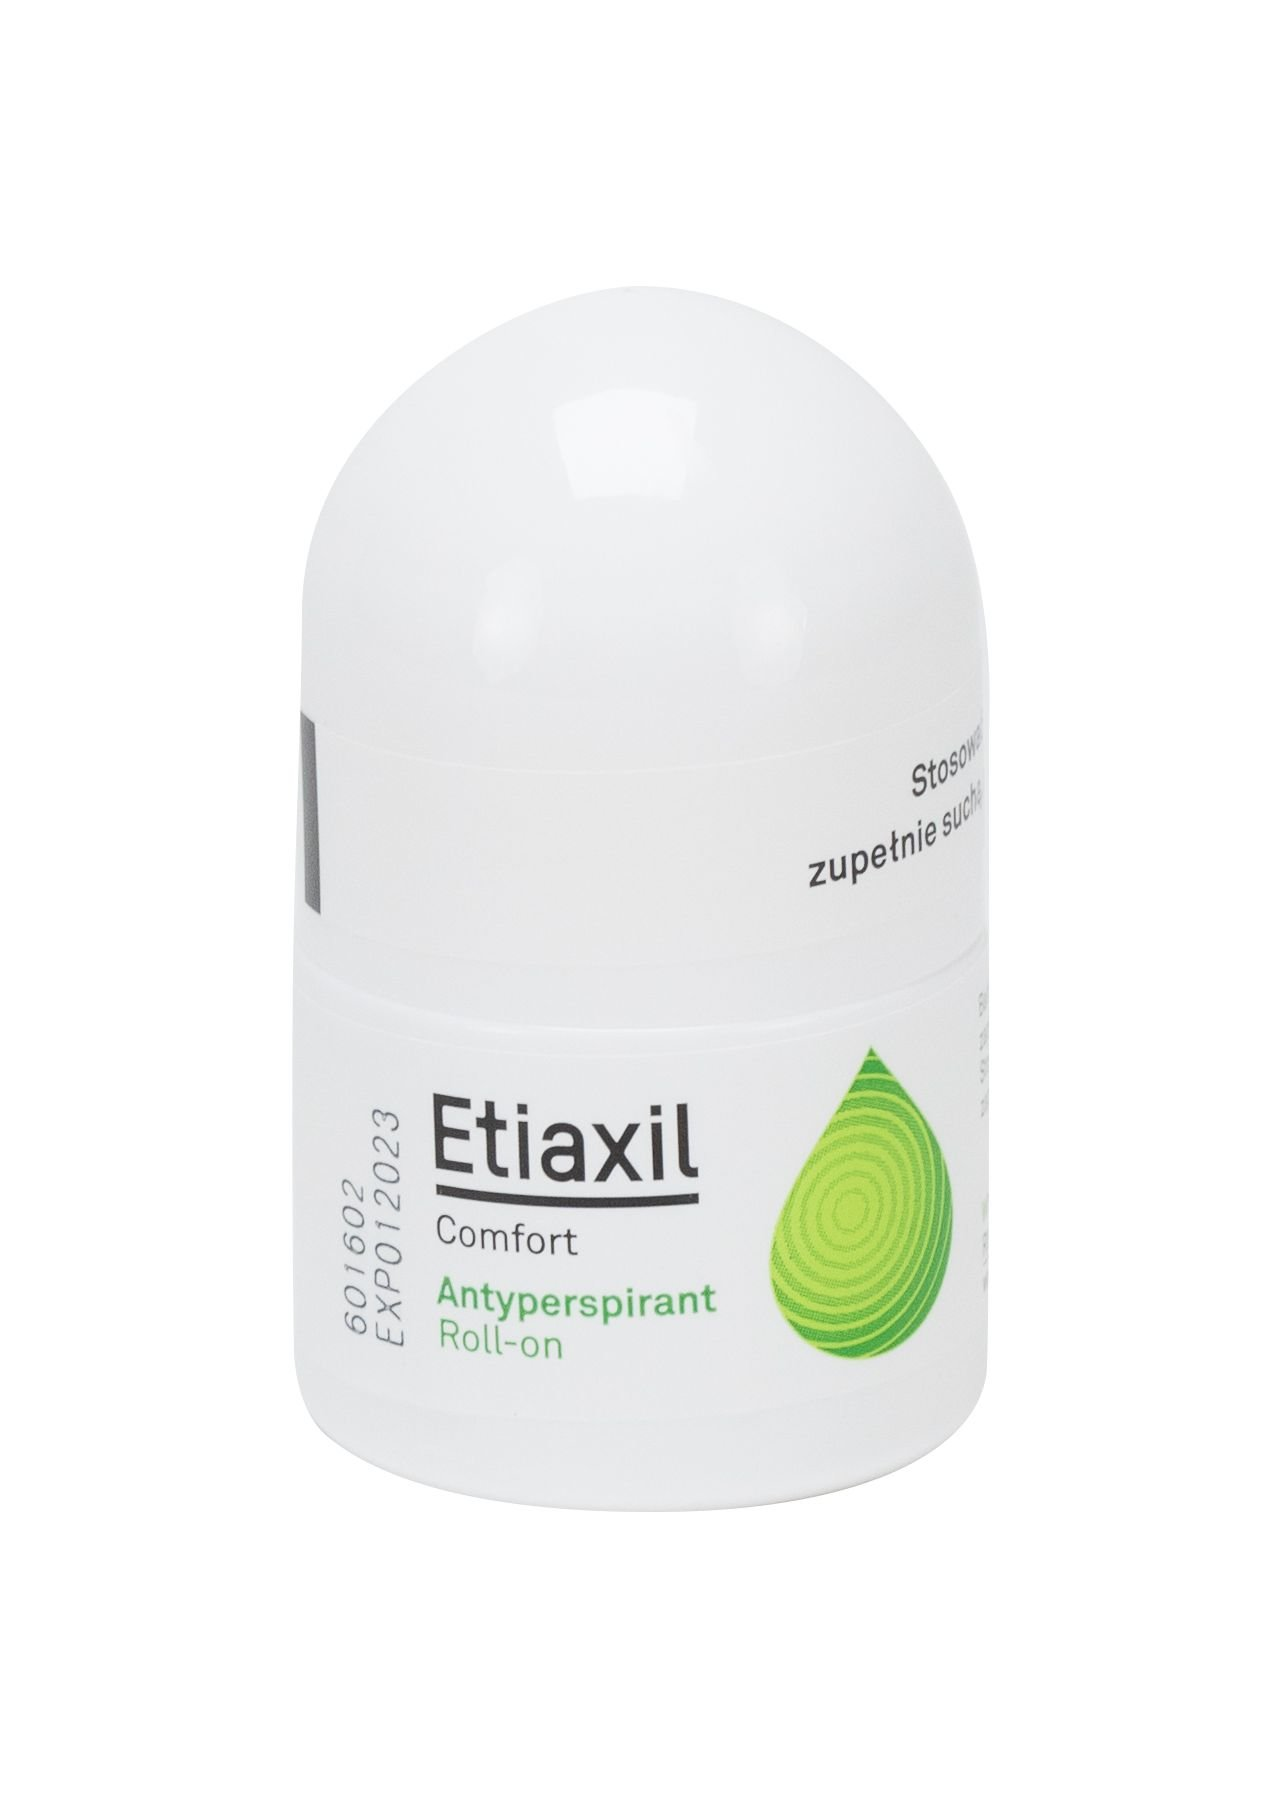 Etiaxil Comfort  Antiperspirant, W, 15 ml